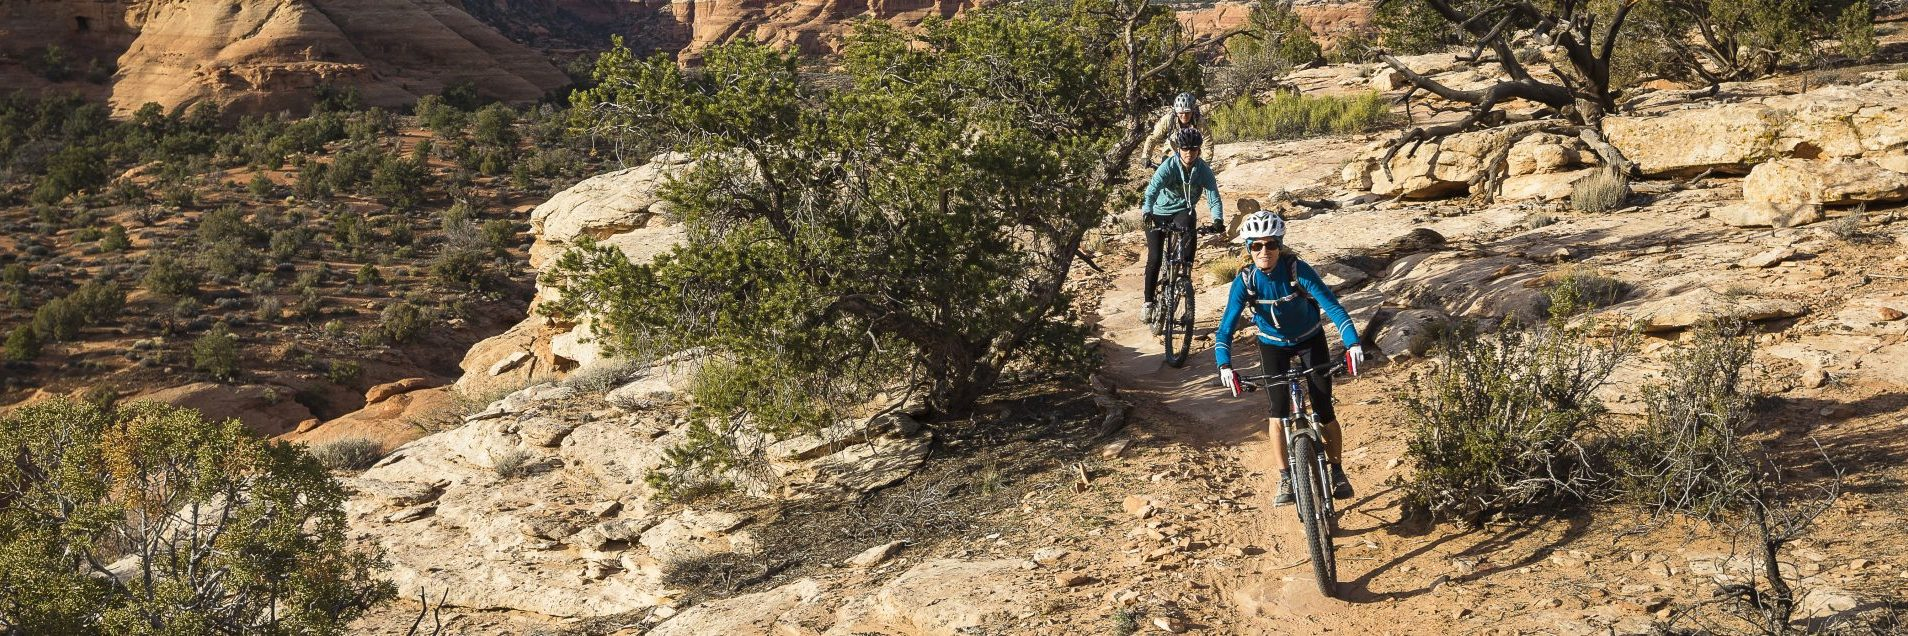 Riders follow a guide on the technical singletrack above Bull Canyon - part of the Magnificent 7 half or full day guided mountain bike tour near Moab UT